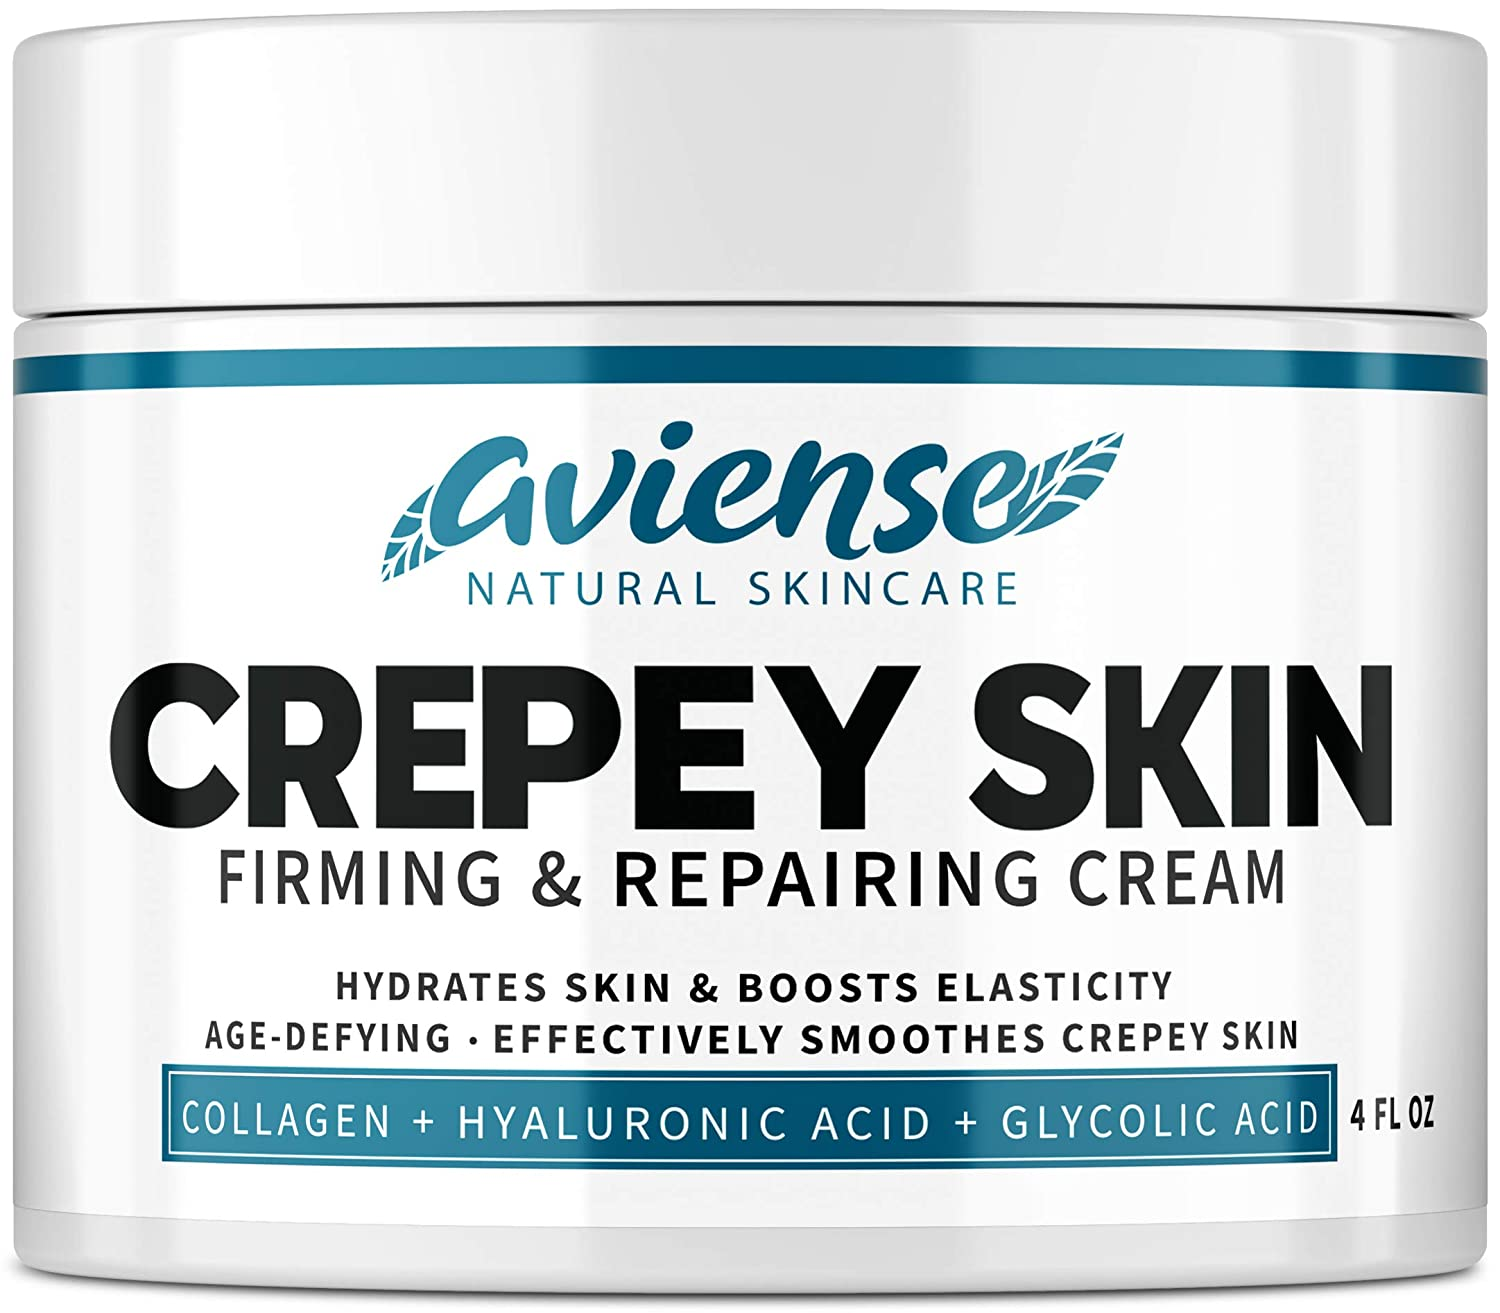 Crepey Skin Treatment - Sagging Skin Tightening for Body & Face - Made in USA - Neck & Decollete Anti-Wrinkle Chest Cream - Anti-Aging & Firming Cream with Glycolic Acid, Collagen & Hyaluronic Acid: Beauty